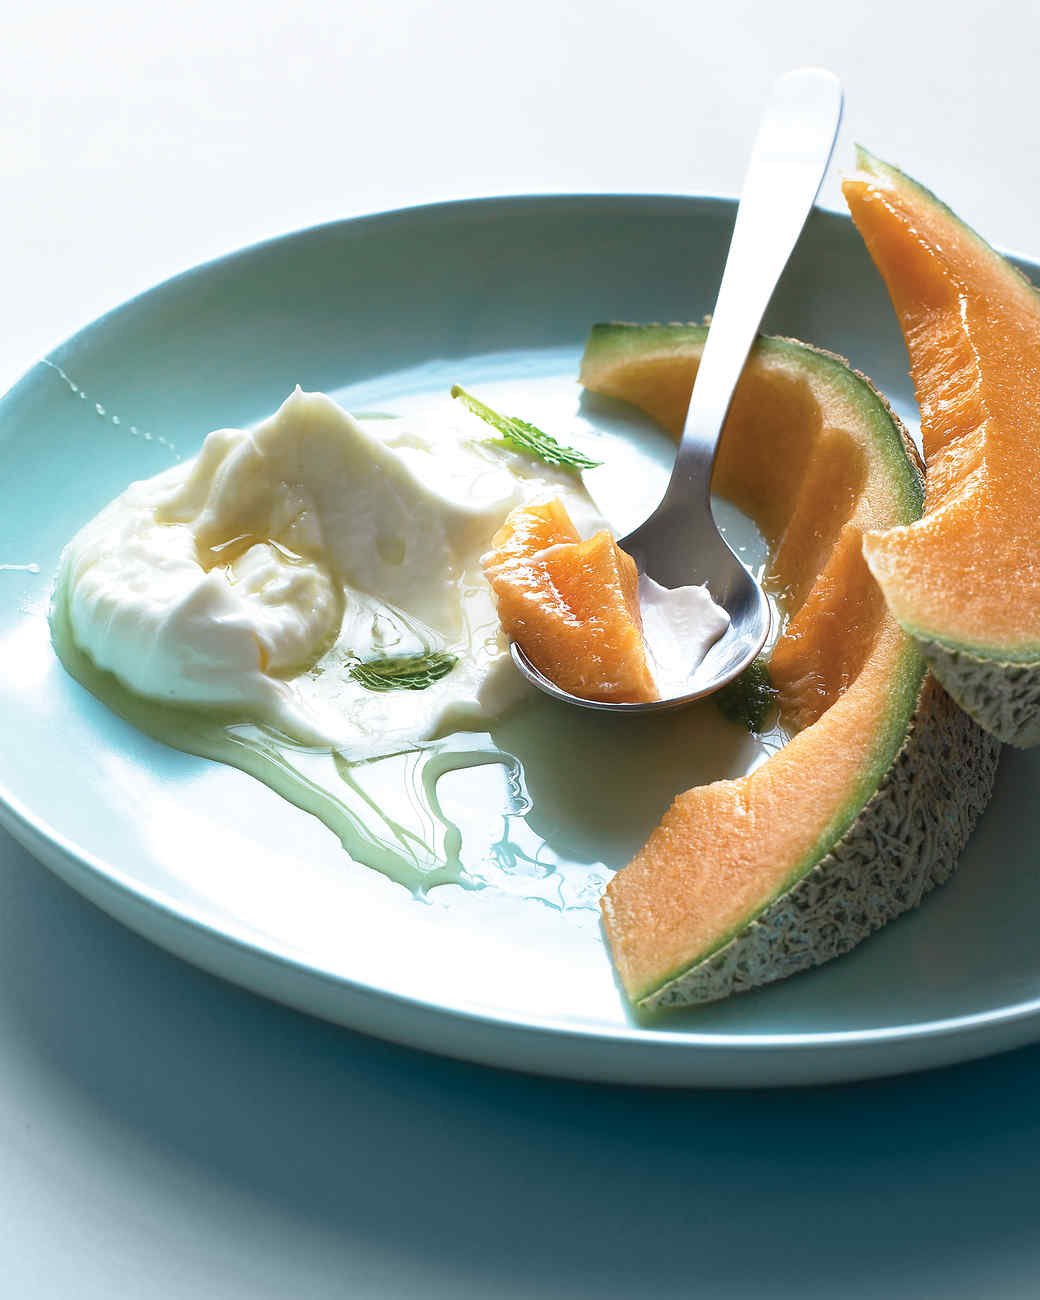 med104695_0609_mellon_yogurt.jpg